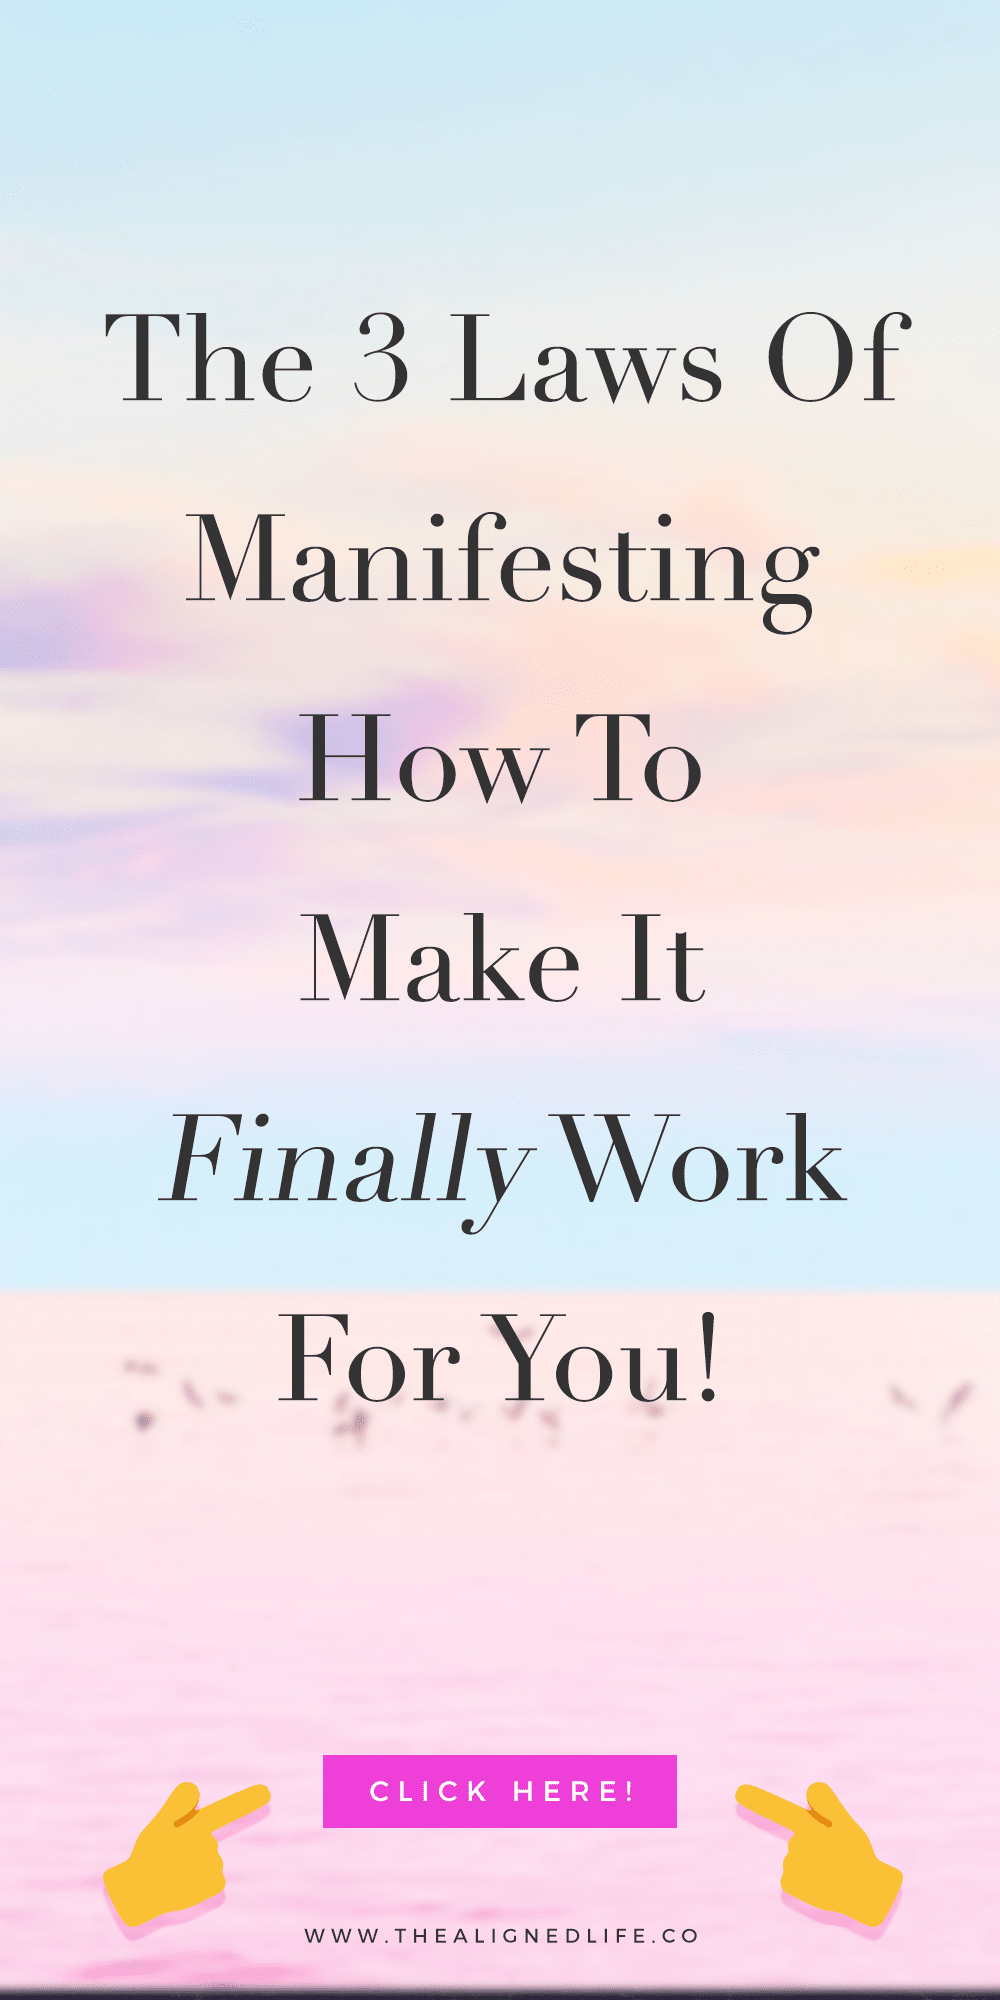 The 3 Laws Of Manifesting - How You Can Finally Make It Work For You!